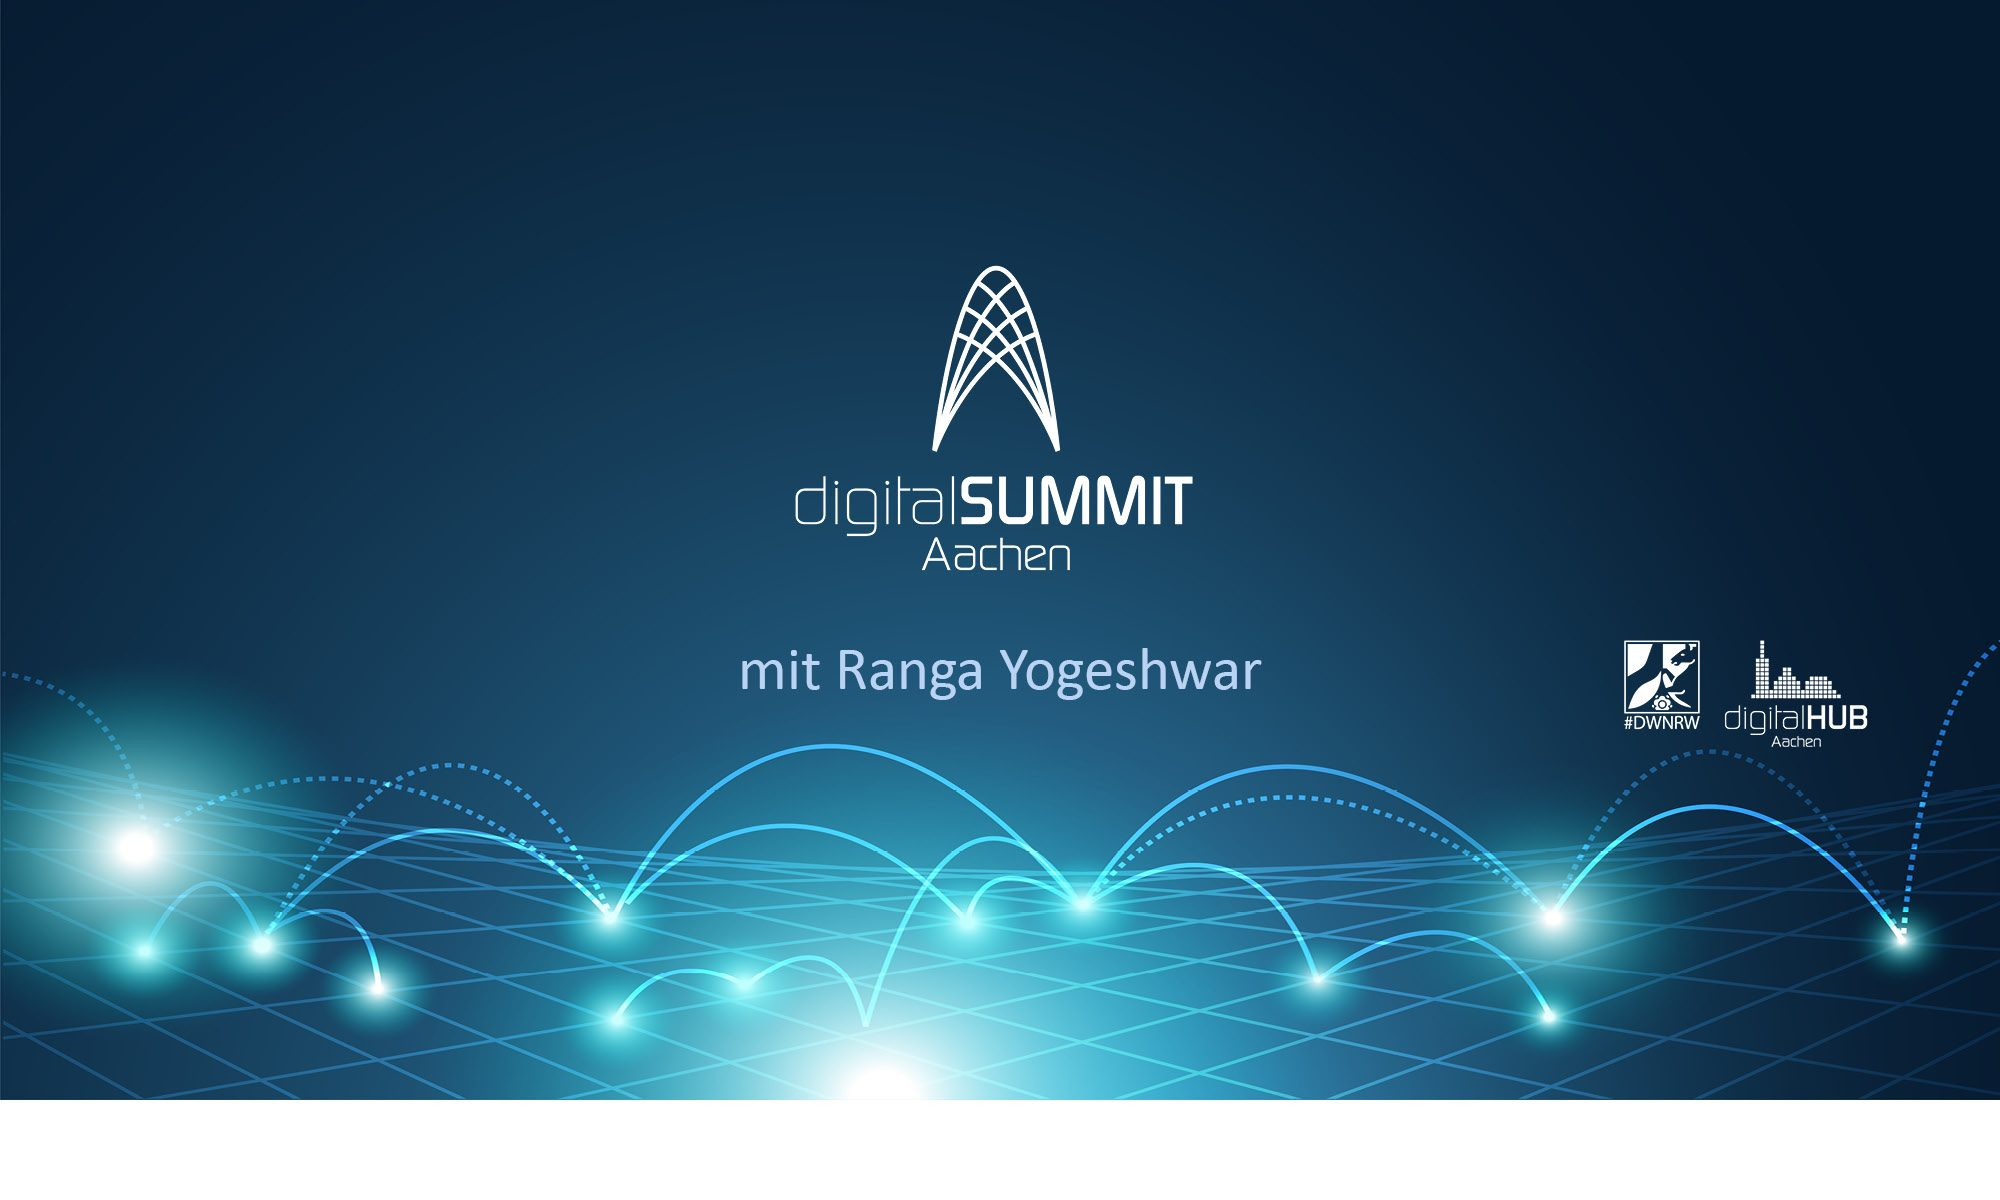 digitalSUMMIT Aachen